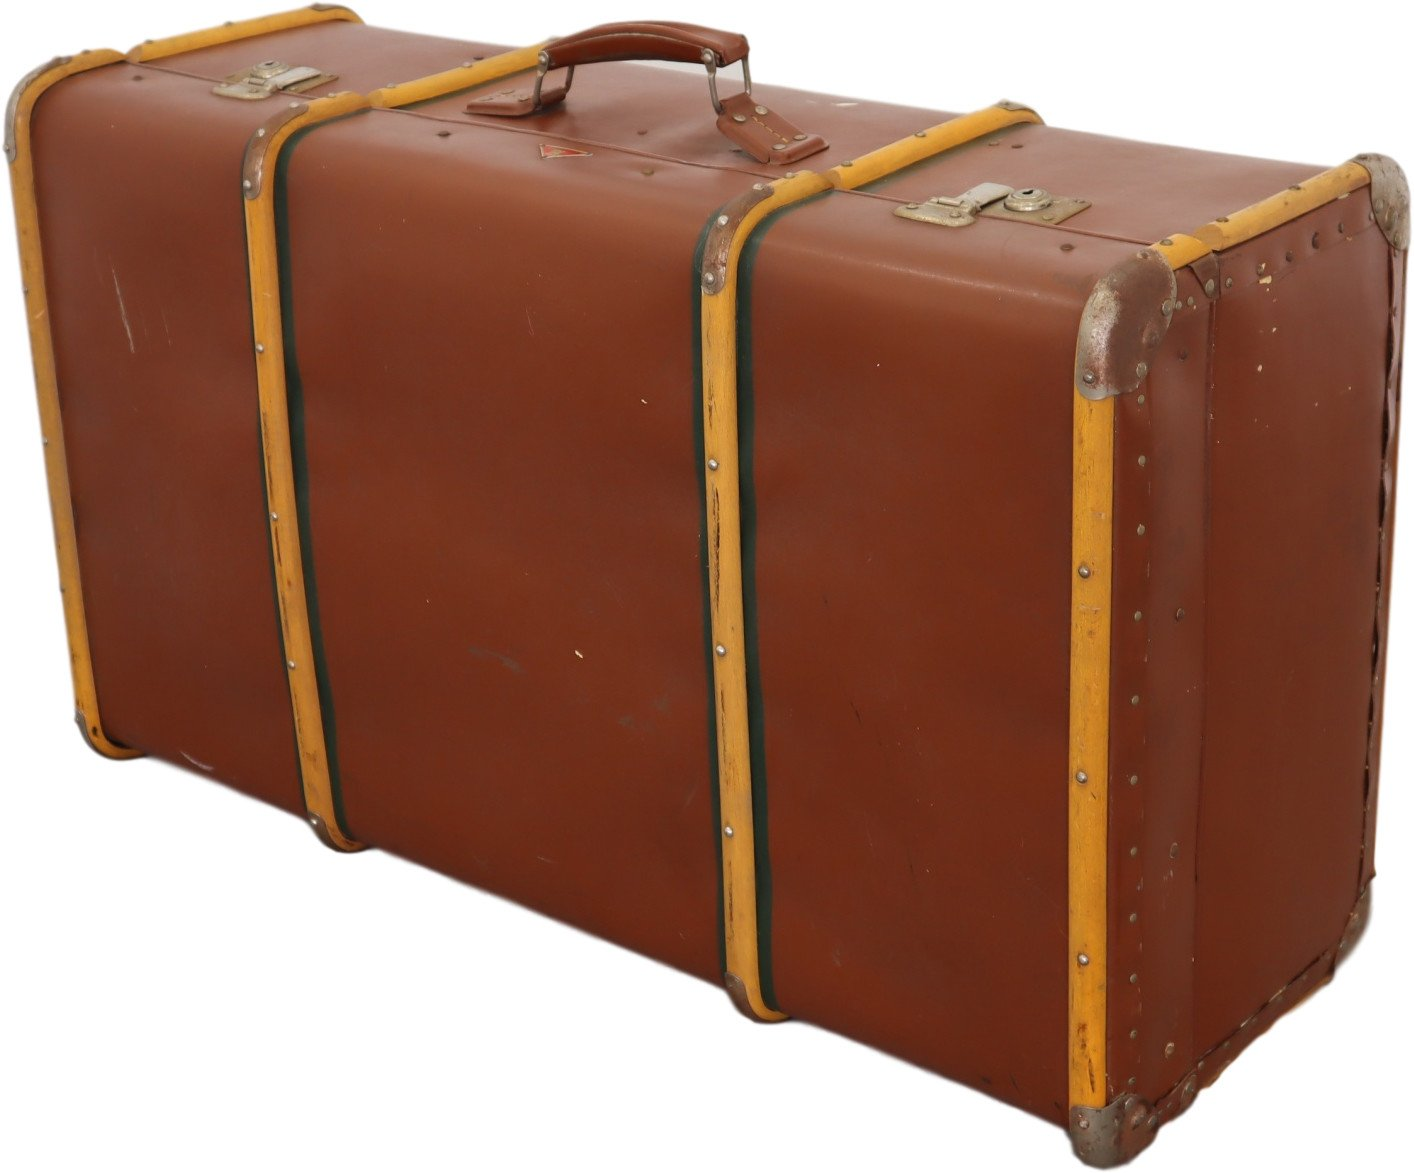 Suitcase, Lohmann, Germany, 1940s